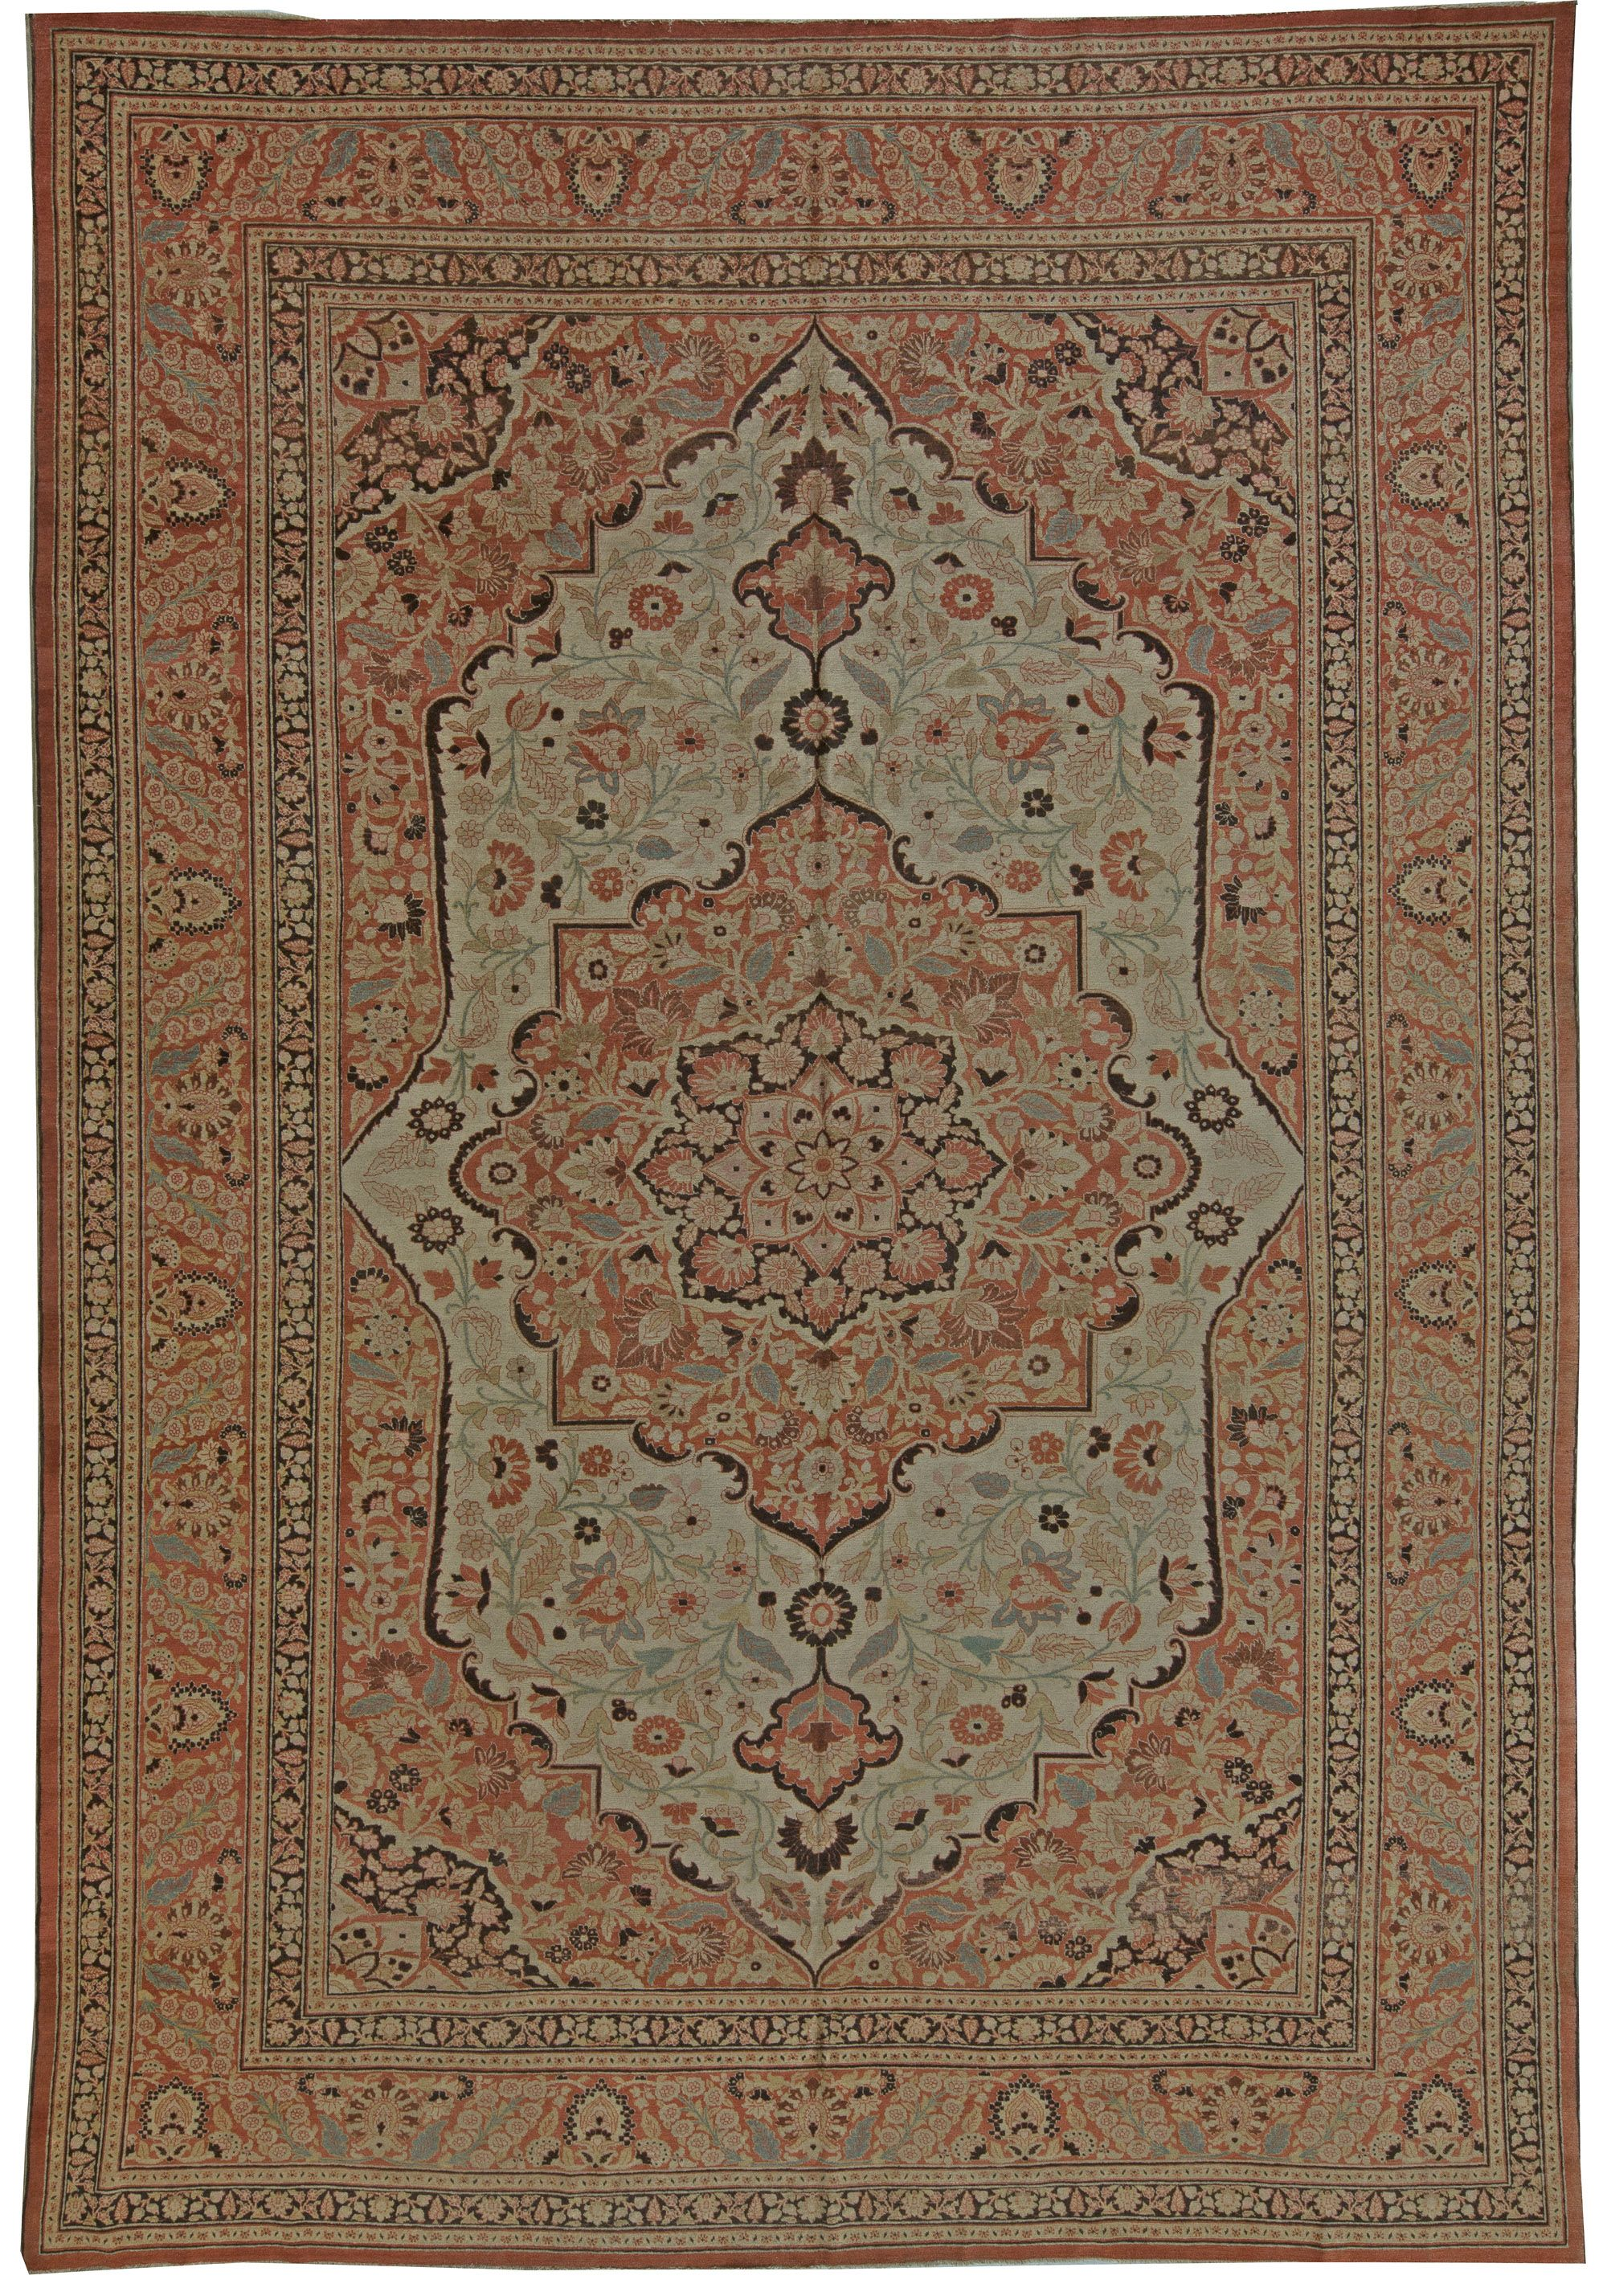 The Golden Age Of Persian Carpet Weaving Occurred During Safavid Dynasty When Shah Tahmasp